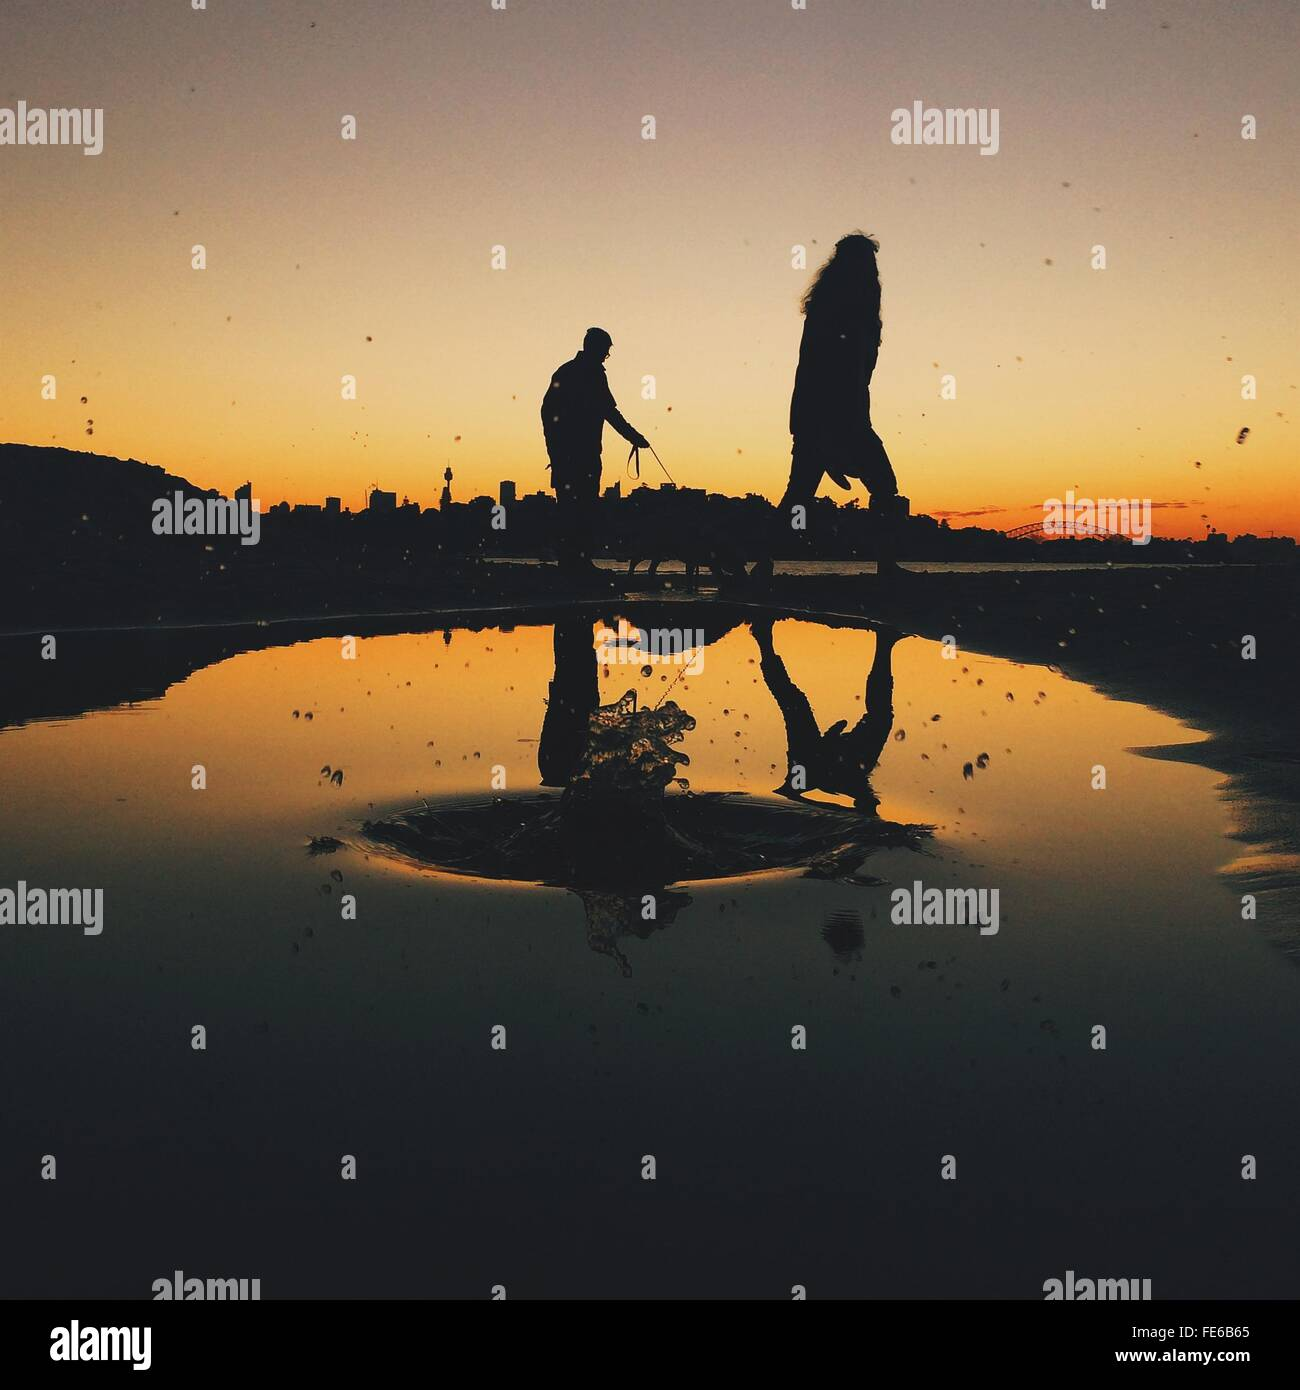 Silhouette Of Two People Walking At Lakeside At Sunset - Stock Image